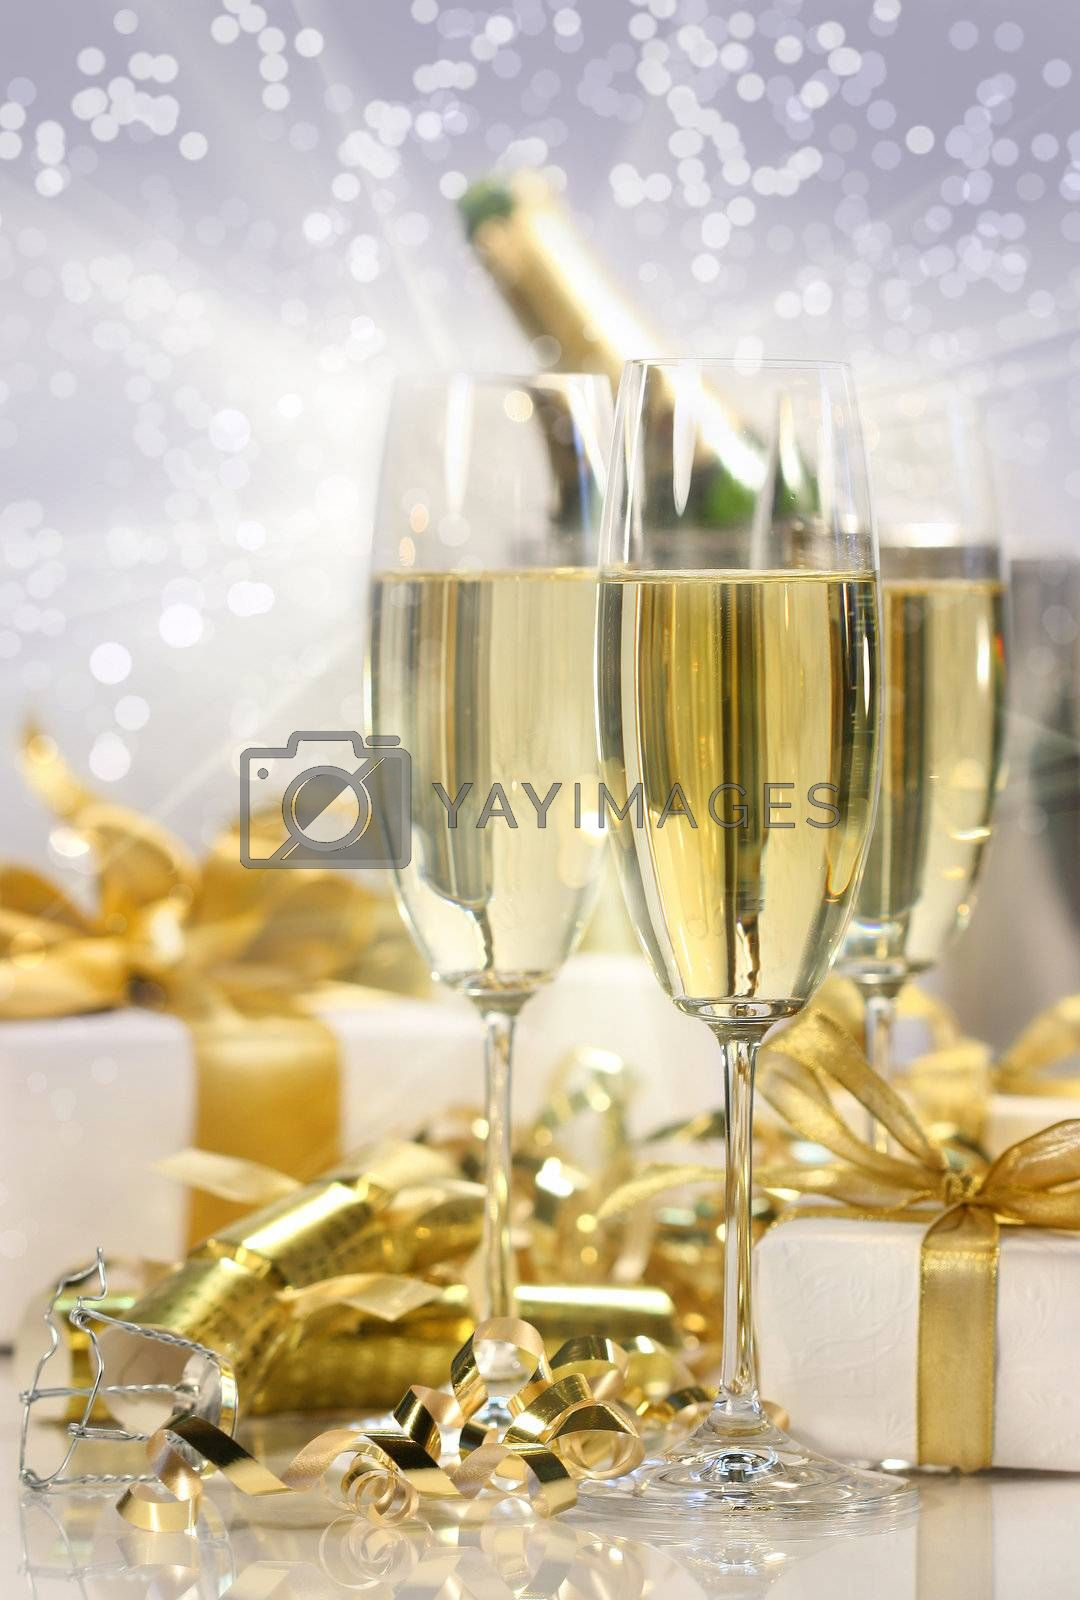 Champagne celebration with gifts for the new year